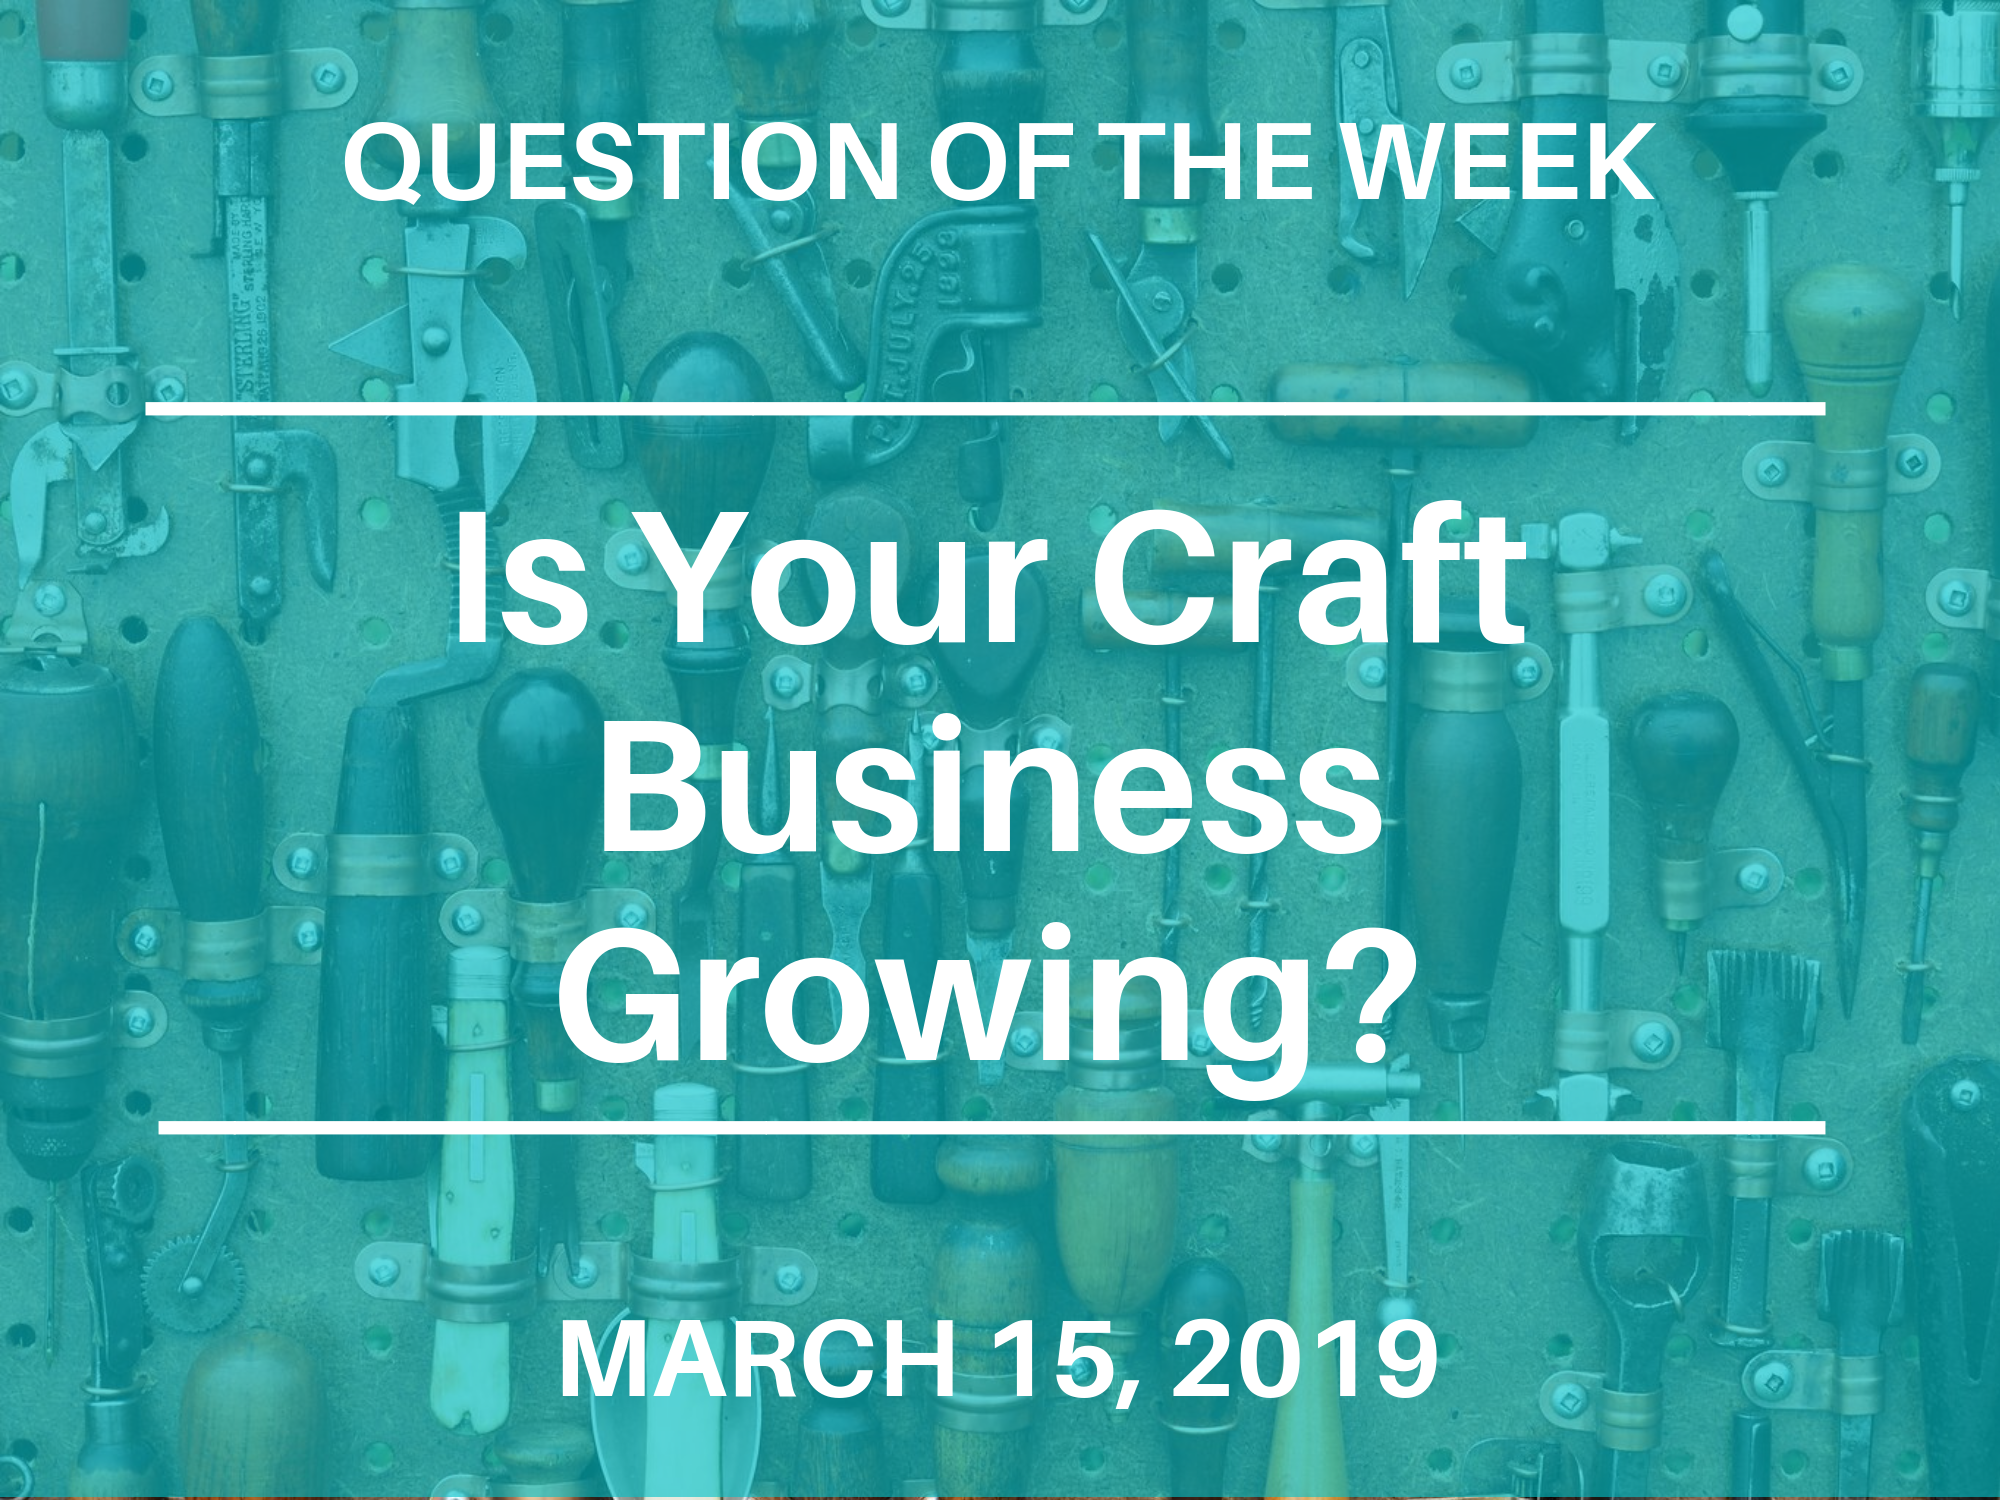 Question of the Week_March 15 2019.png